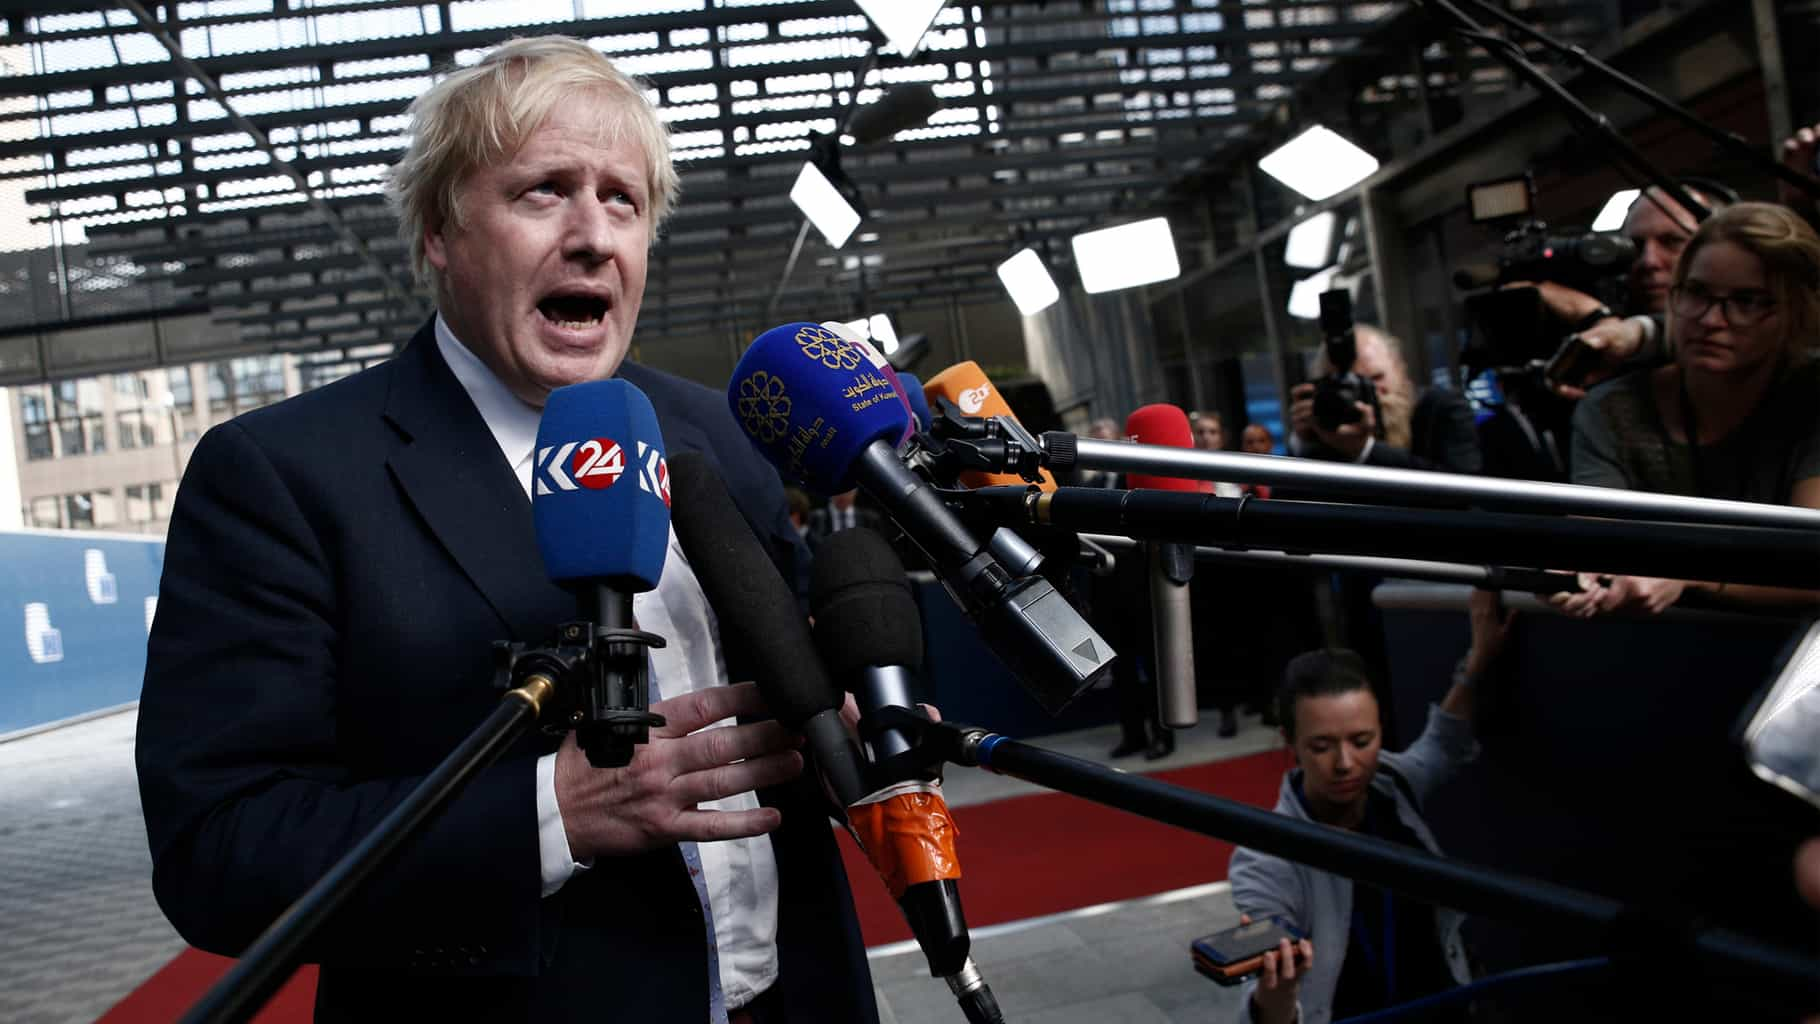 Boris Johnson could be the next Churchill if he delivers a favorable Brexit deal for the U.K. (Photo: Shutterstock)